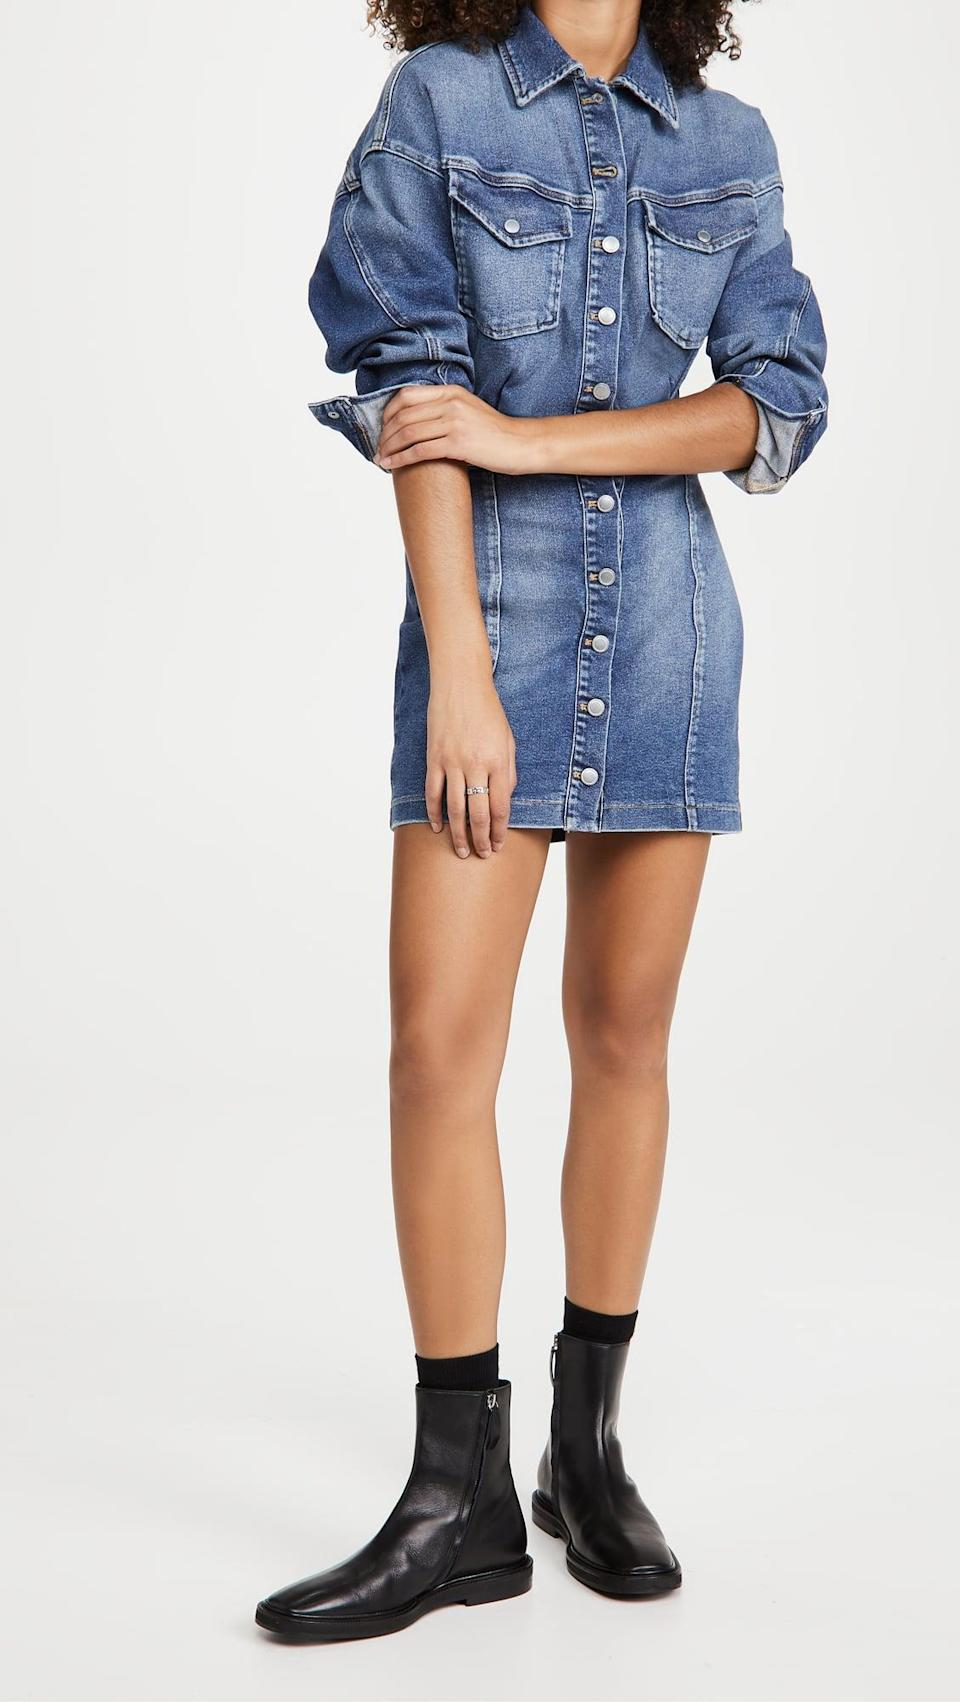 <p>This <span>Good American Cinched Jacket Dress</span> ($137, originally $195) is both comfortable and cool.</p>